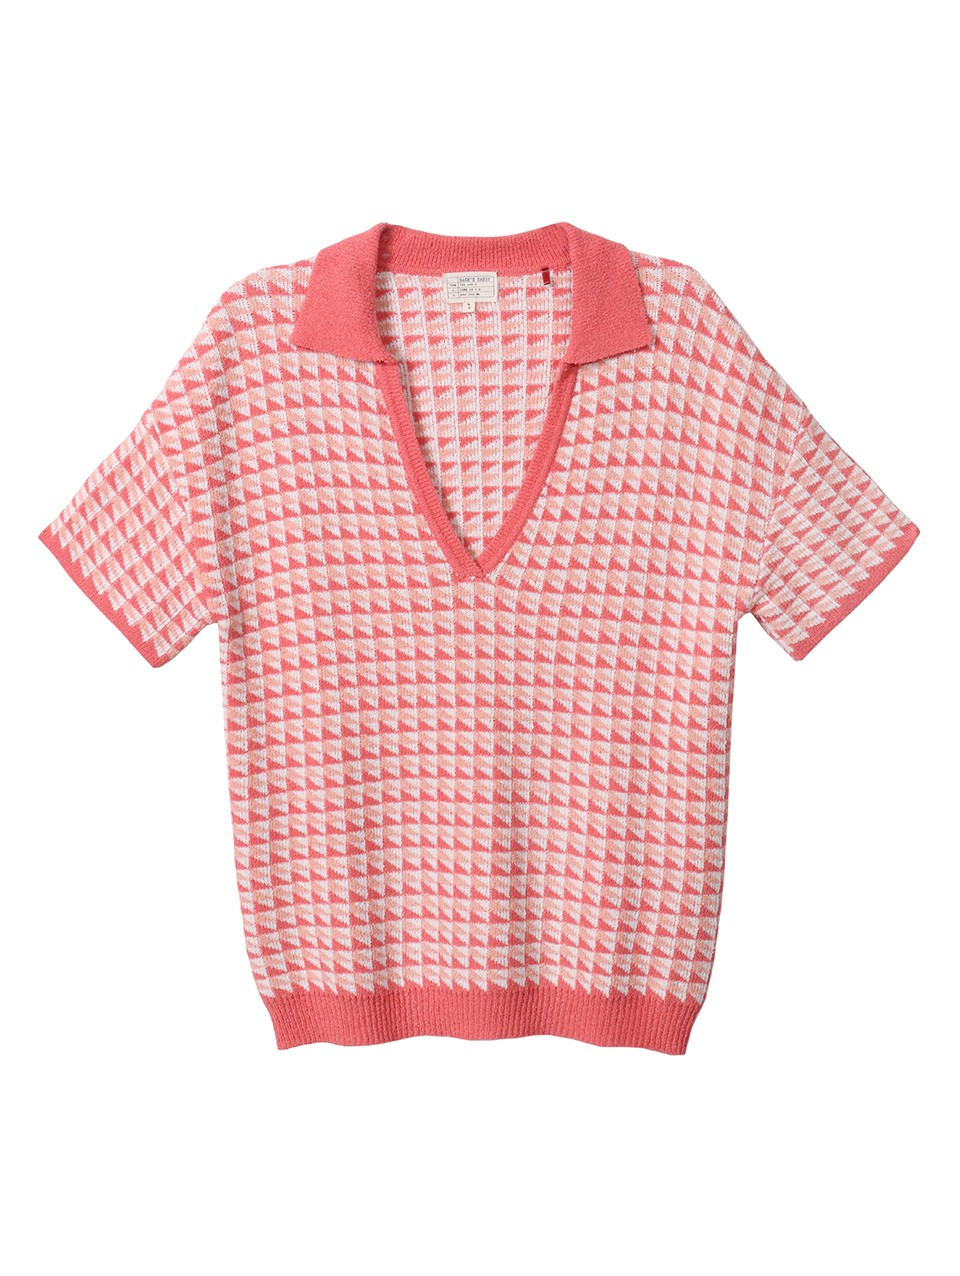 Zola Jaquard Knitted Polo Top